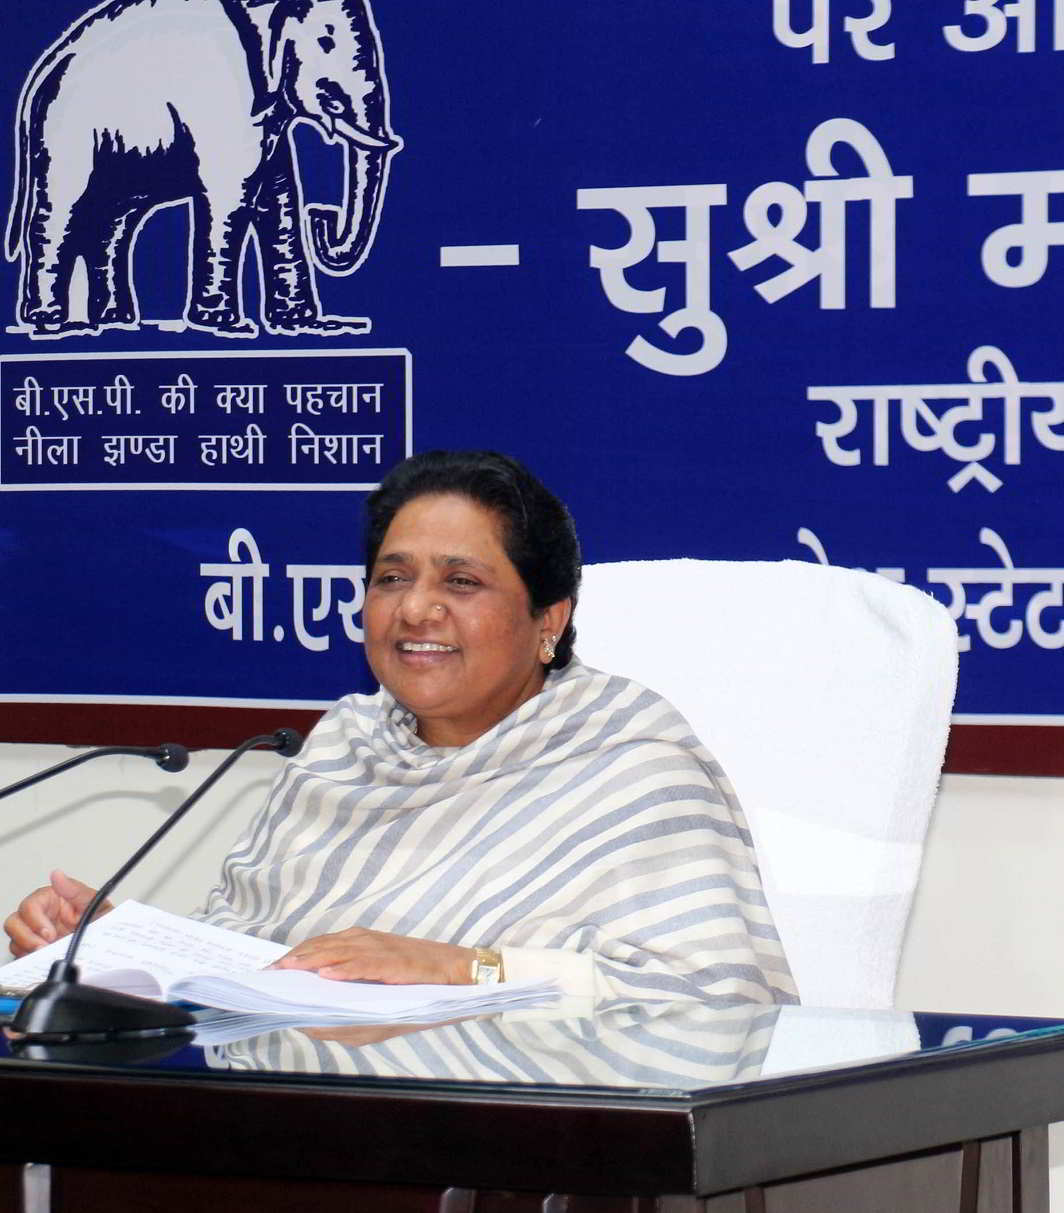 Up for the big battle - Bahujan Samaj Party supremo Mayawati addressing a press conference in Lucknow on Saturday. UNI PHOTO-1U